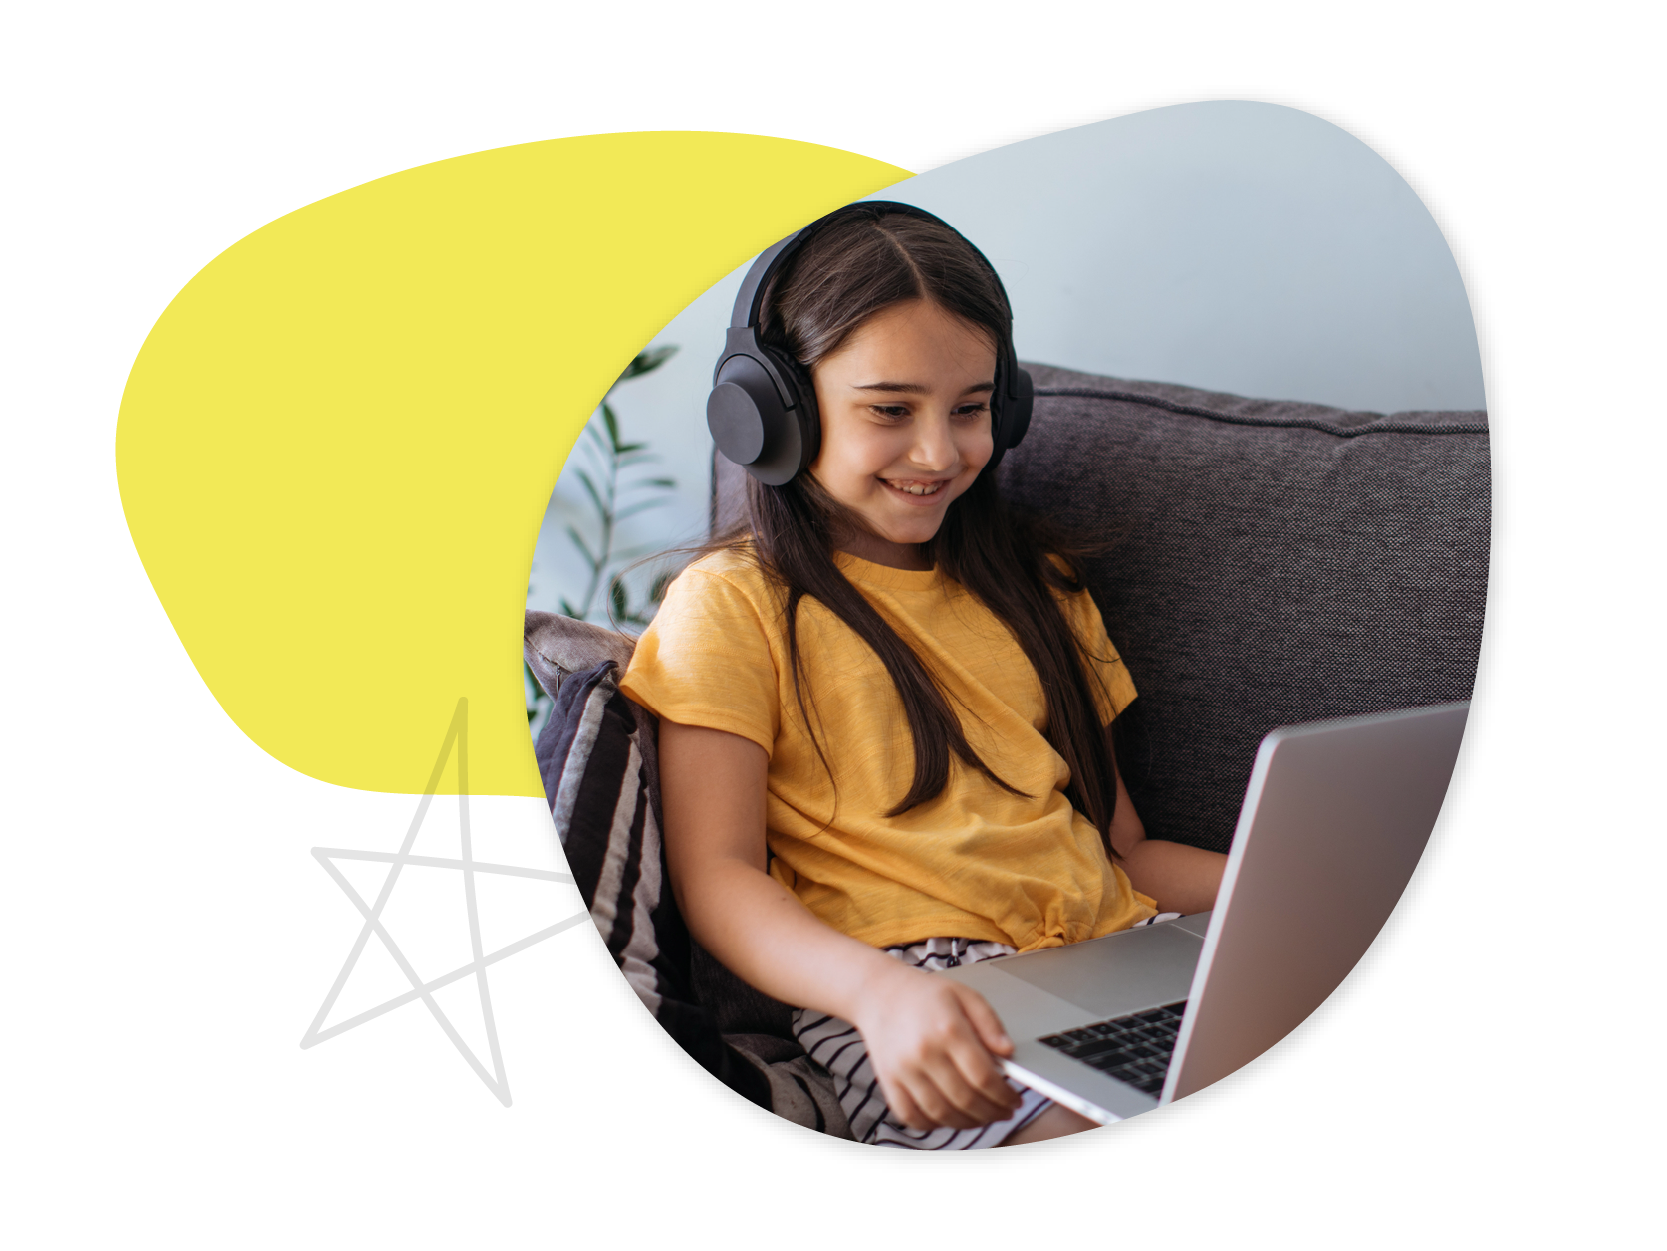 A young girl sits on a couch wearing headphones and holding a laptop